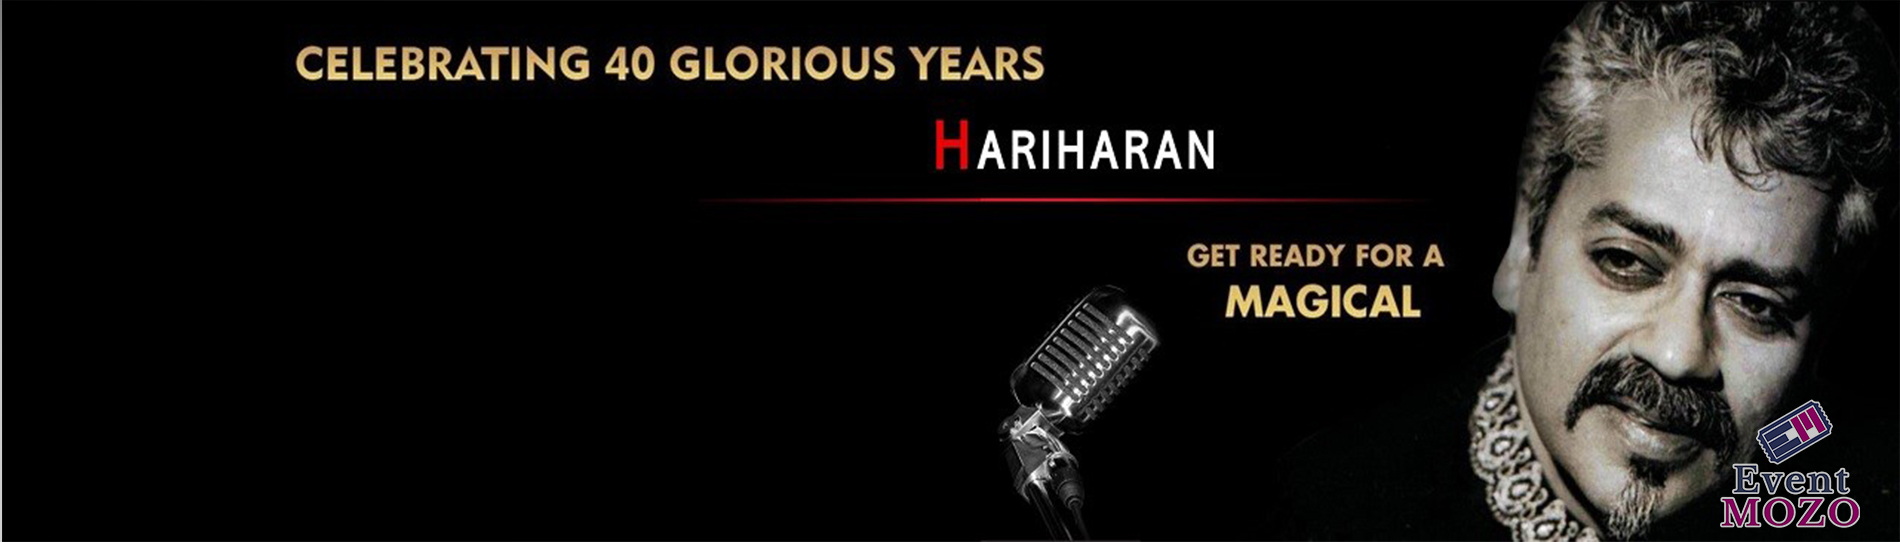 EventMozo Hariharan Live in Concert -40 Glorious Years of his Musica....